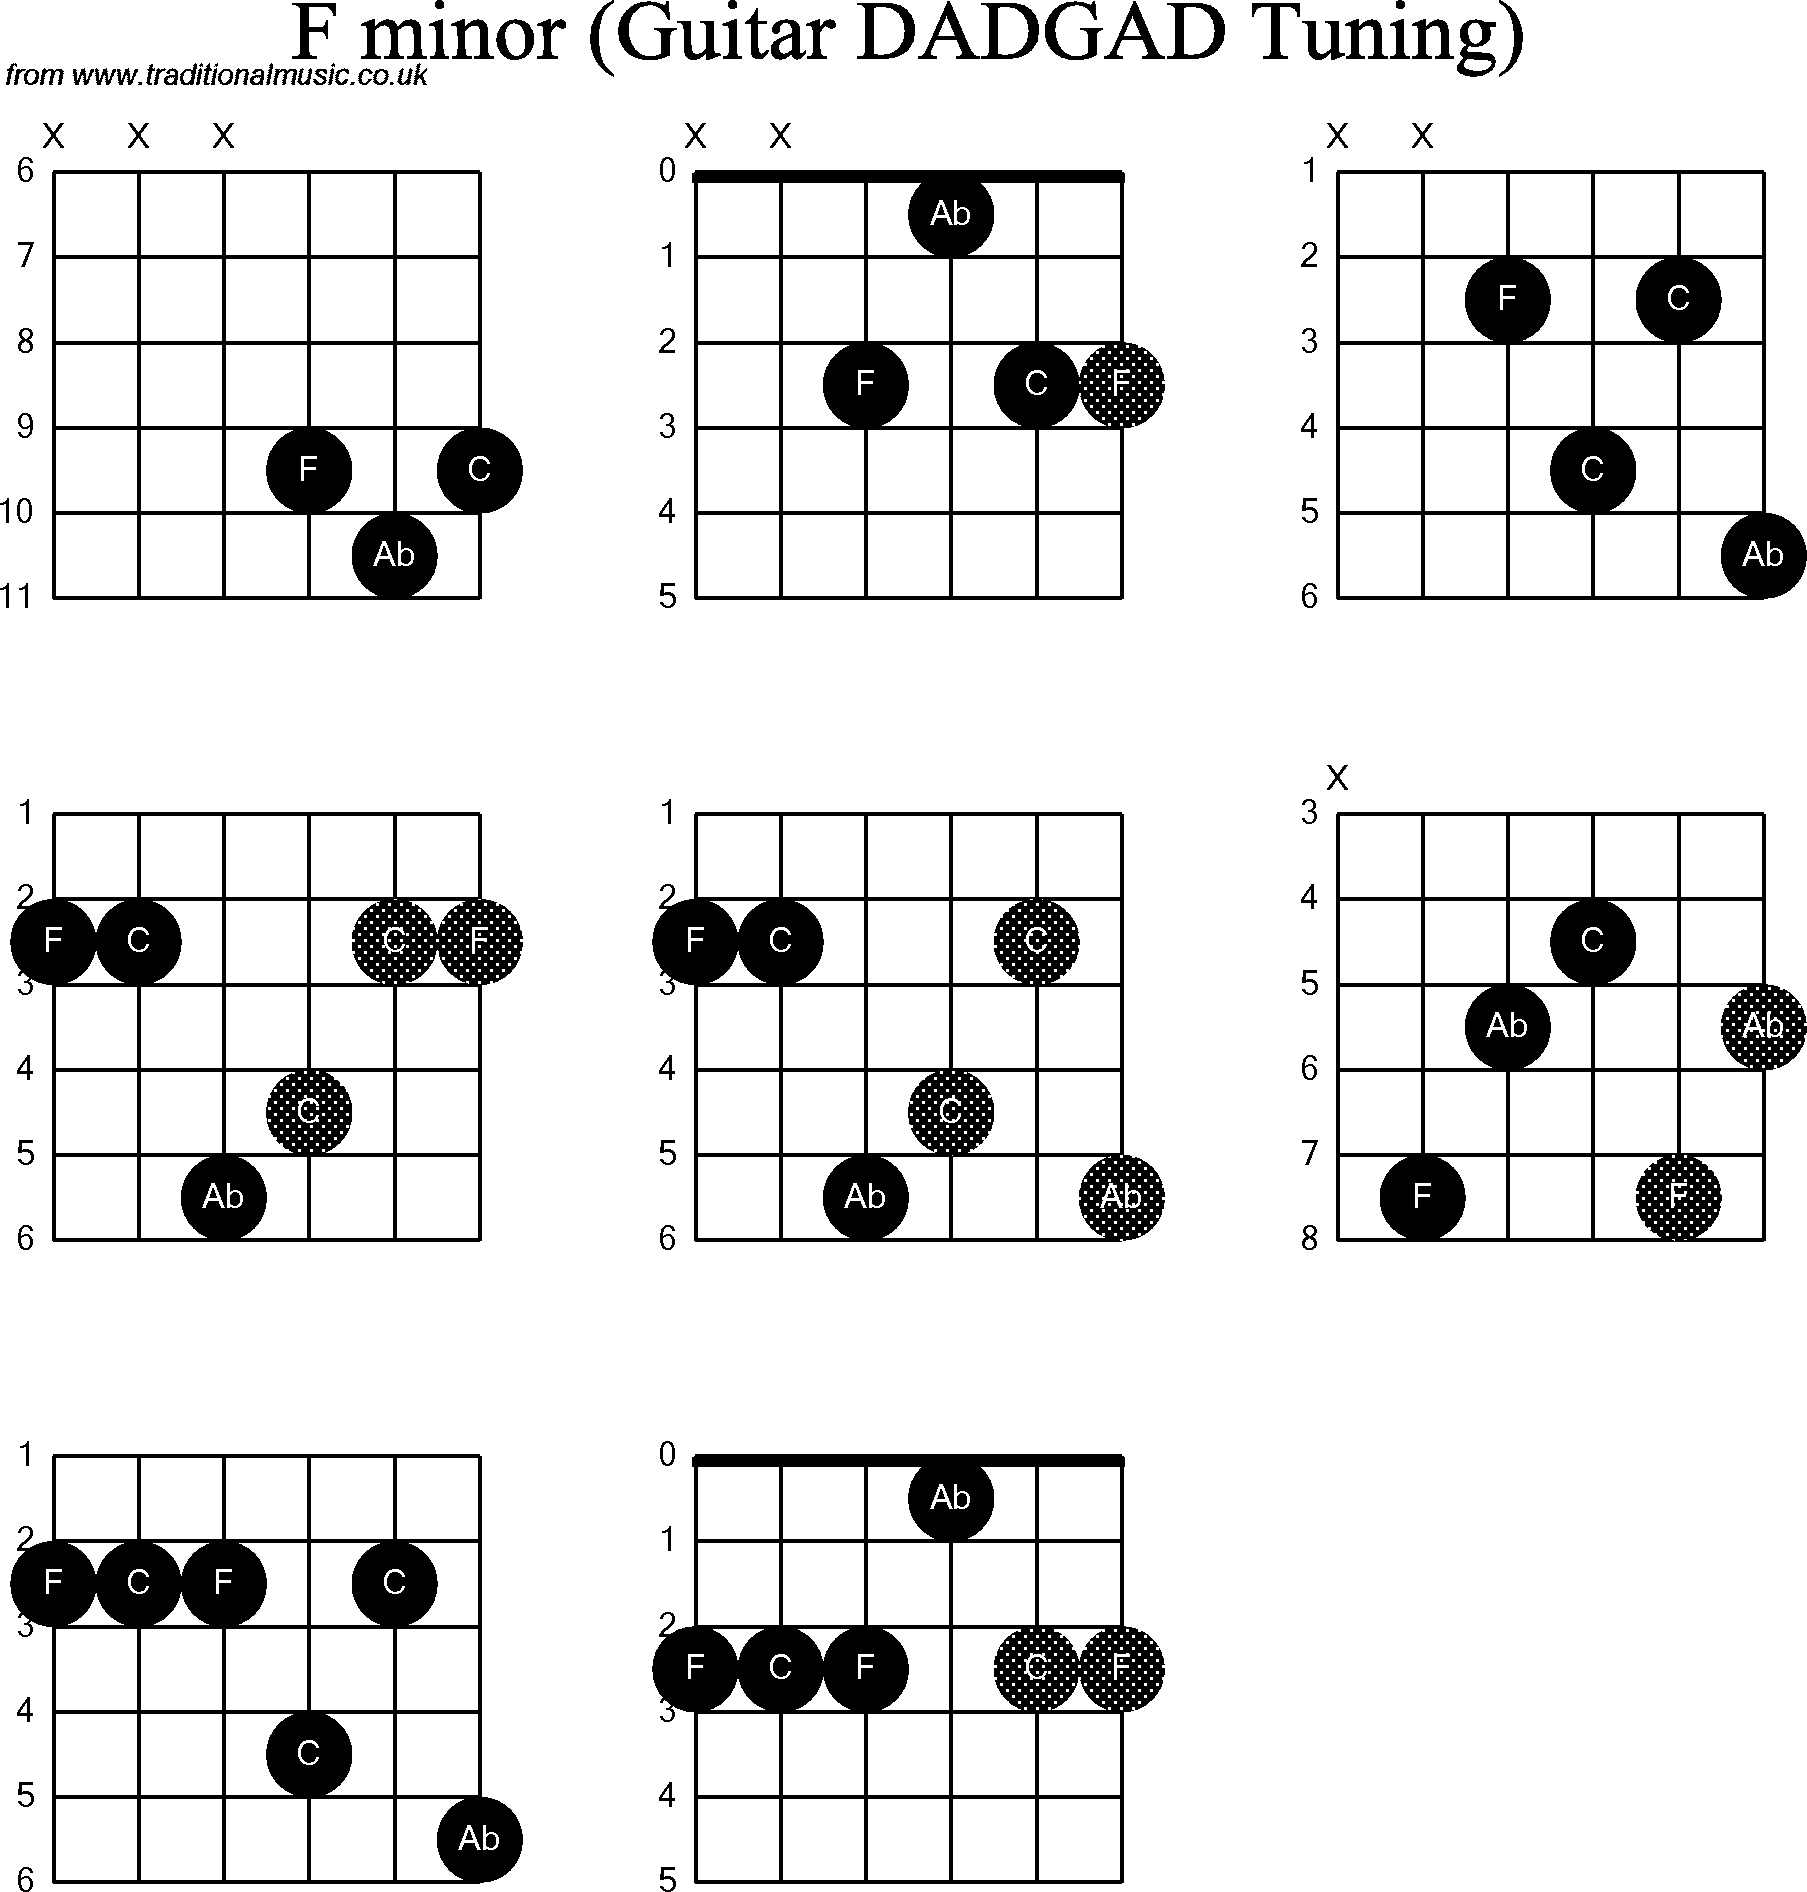 F Chord On Guitar Chord Diagrams D Modal Guitar Dadgad F Minor